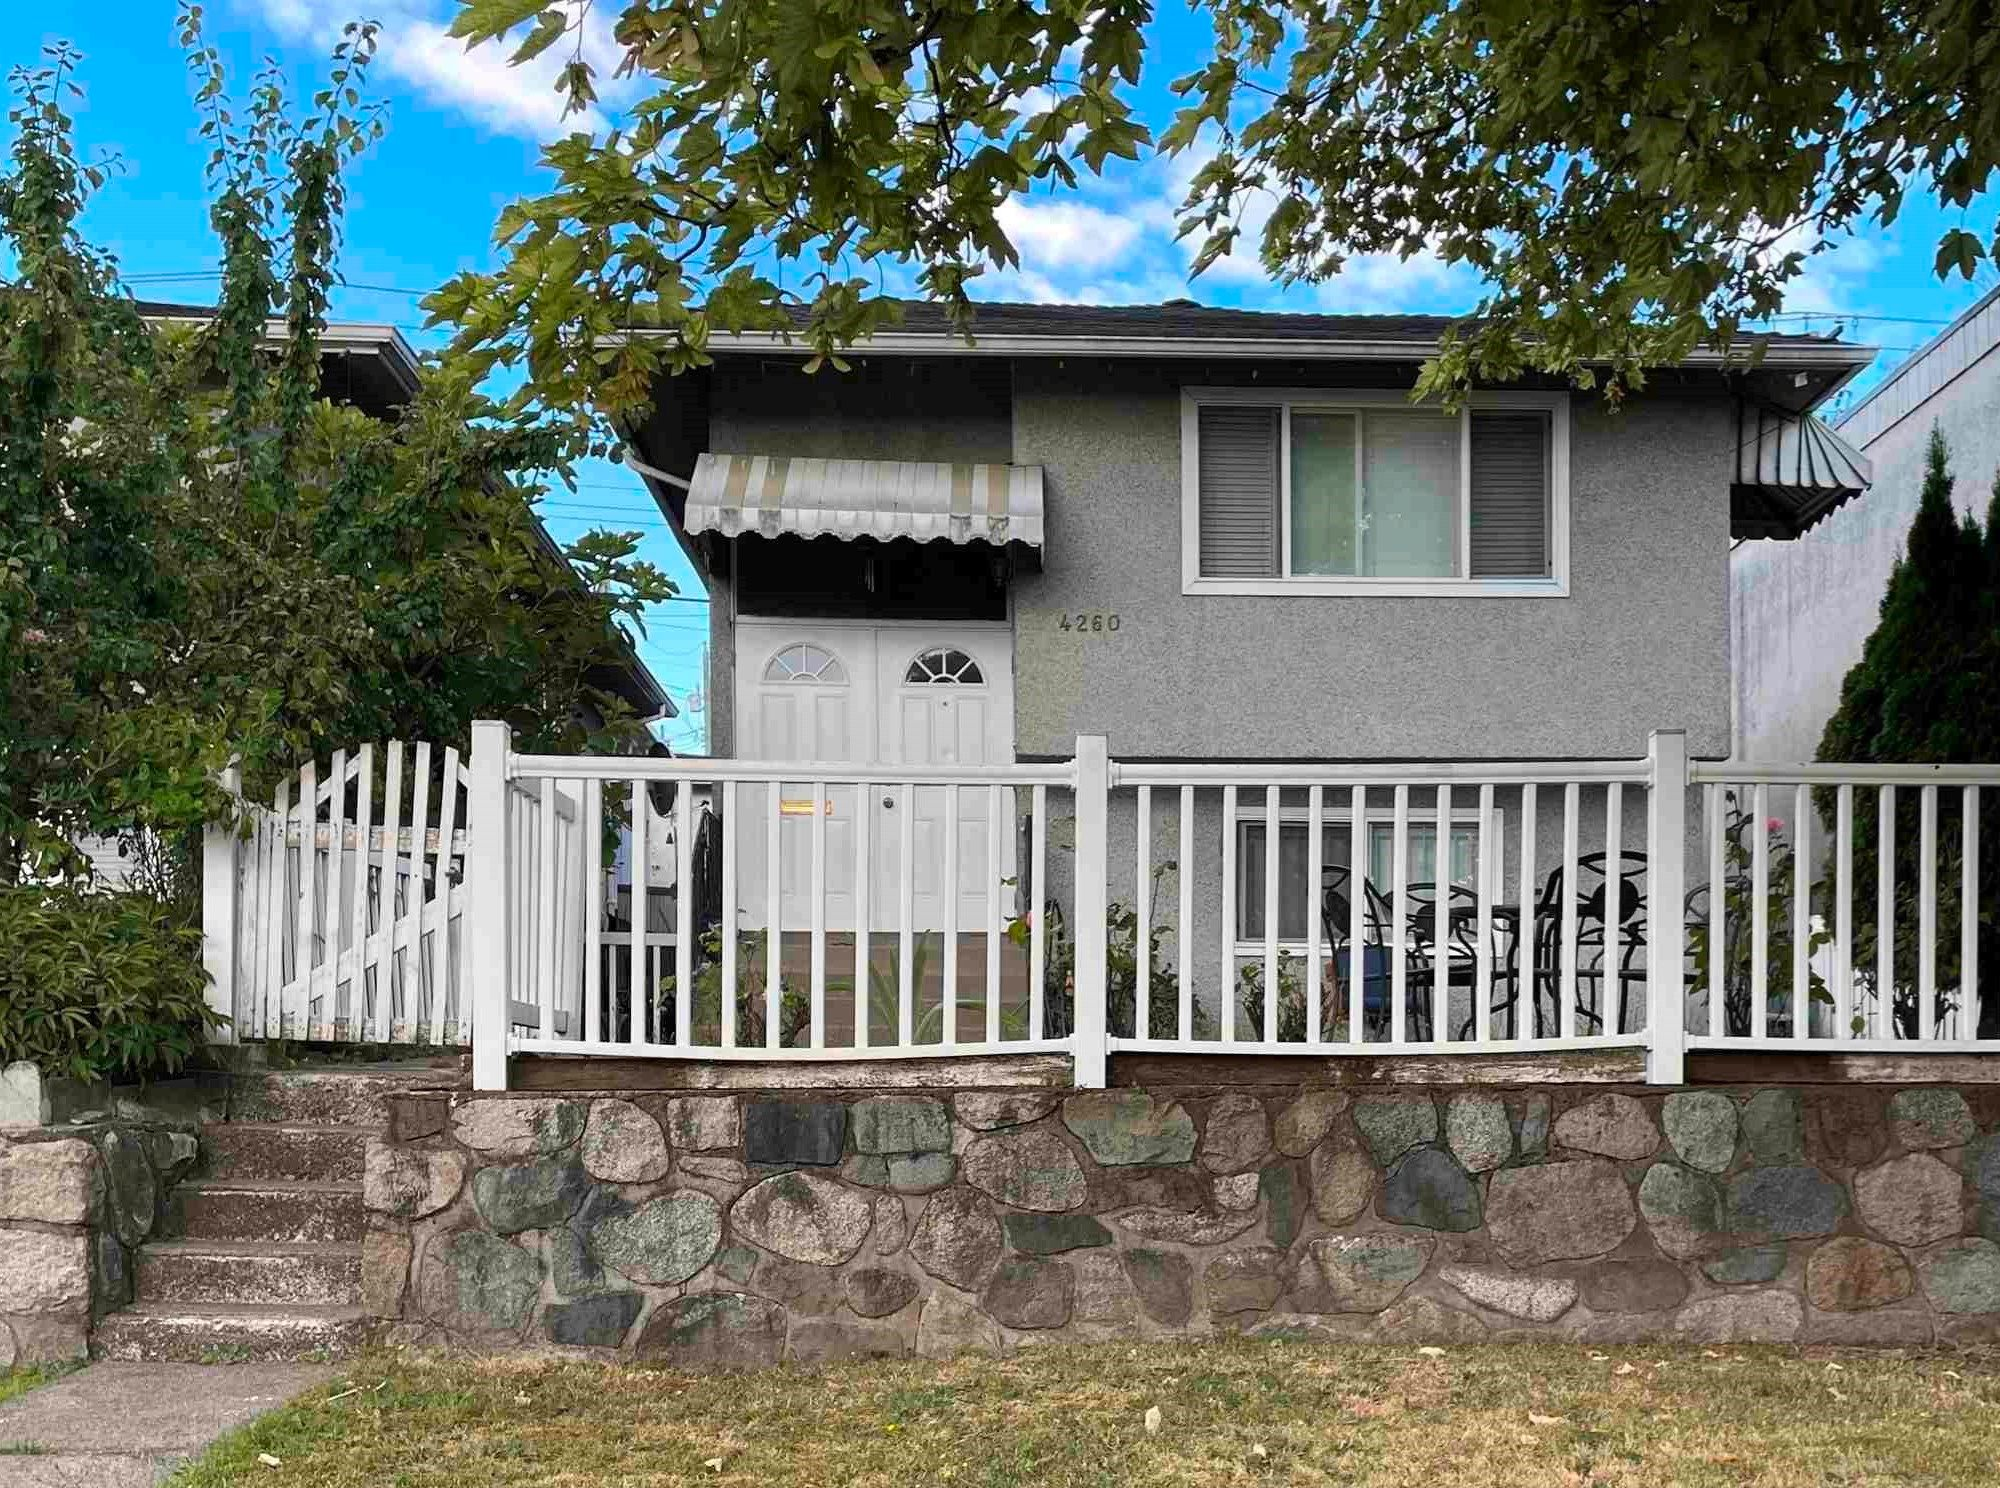 Main Photo: 4260 SLOCAN Street in Vancouver: Renfrew Heights House for sale (Vancouver East)  : MLS®# R2609013